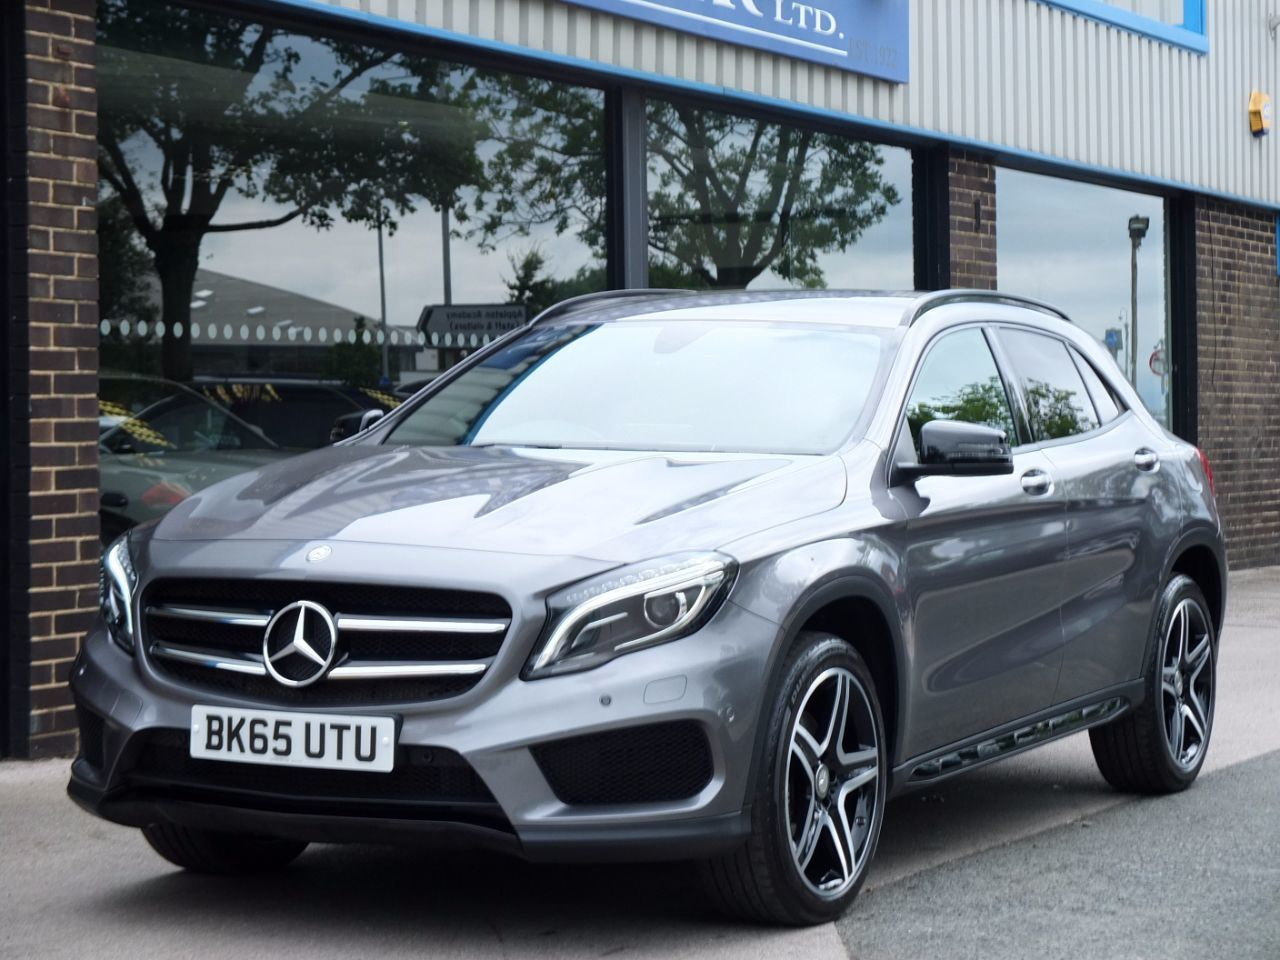 second hand mercedes benz gla class gla 220d 4matic amg line auto premium for sale in bradford. Black Bedroom Furniture Sets. Home Design Ideas